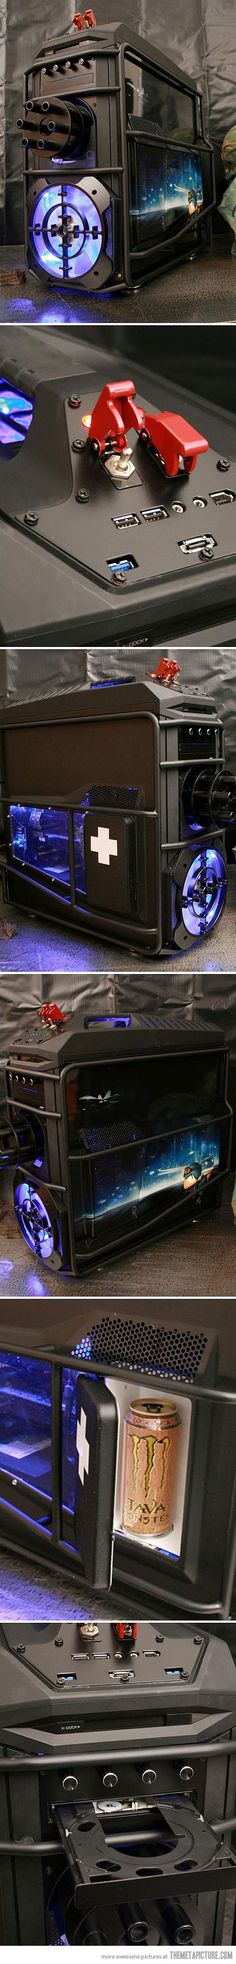 Funny pictures about Battlefield PC. Oh, and cool pics about Battlefield PC. Also, Battlefield PC photos. Gaming Computer, Pc Gaming Setup, Gaming Pcs, Computer Build, Pc Setup, Computer Case, Computer Technology, Funny Computer, Pc Cases